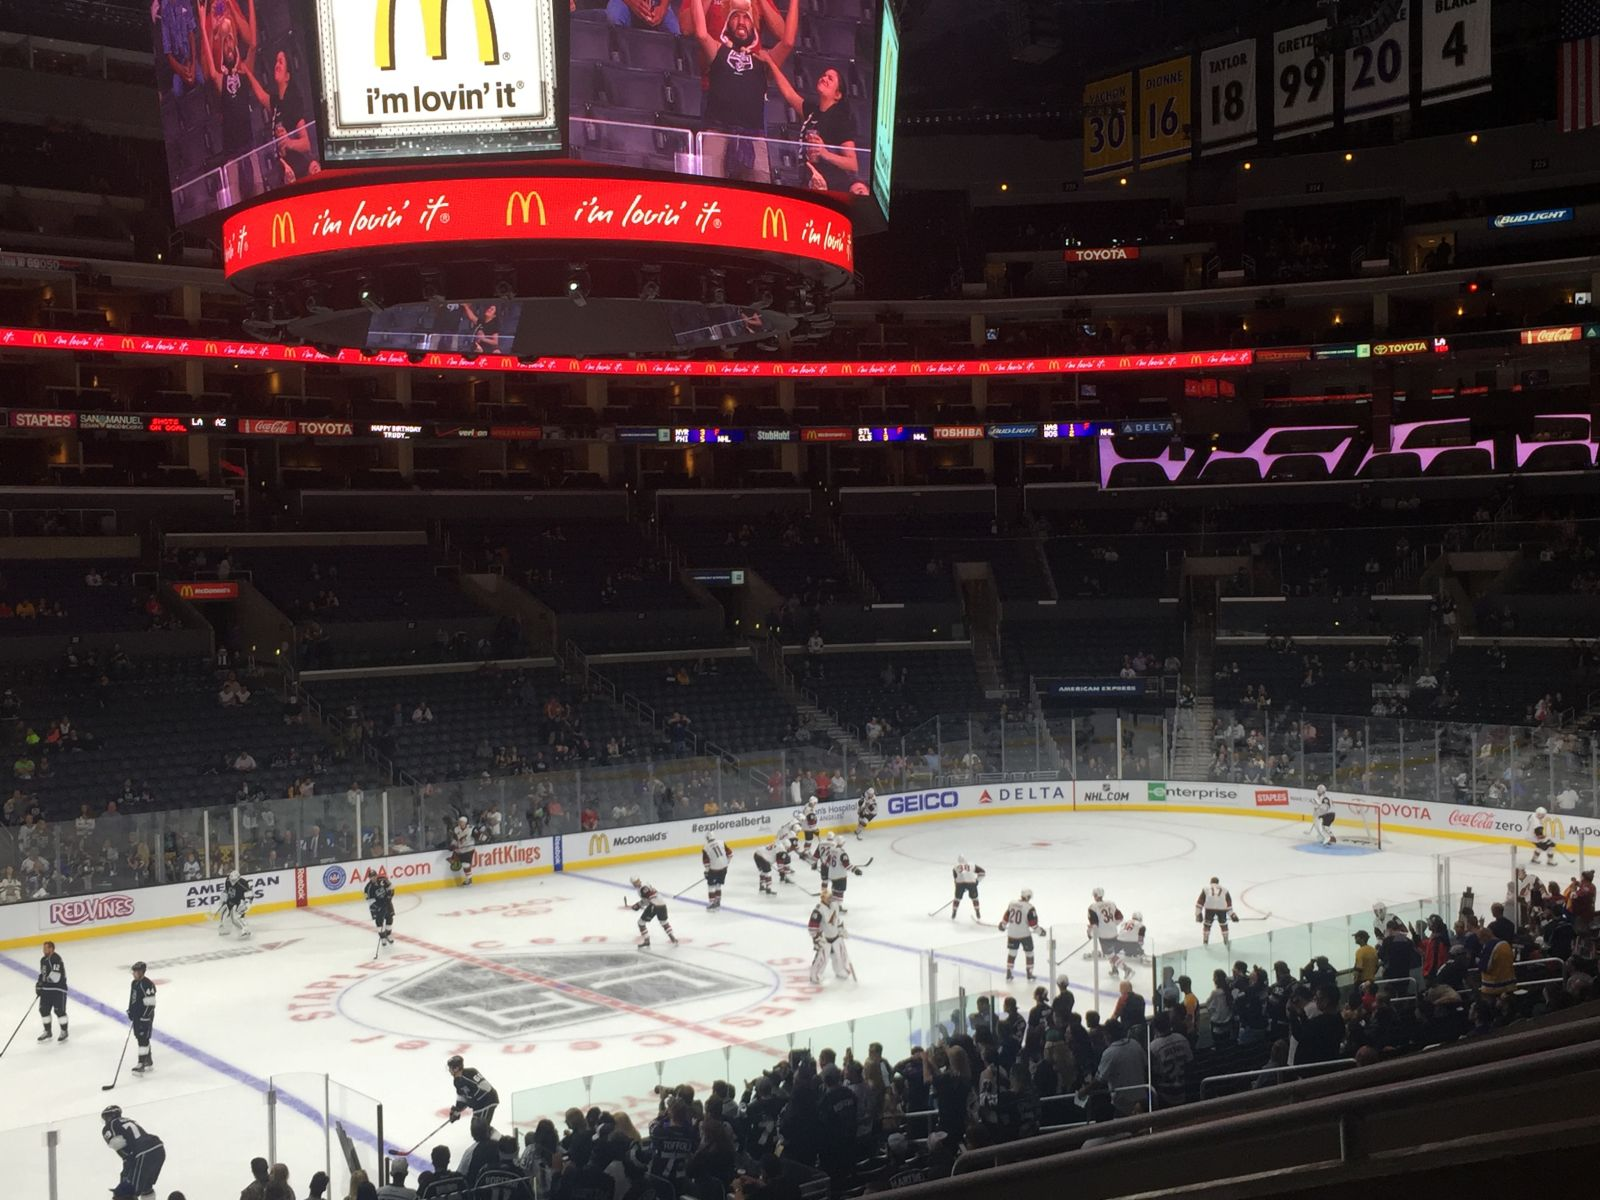 Los Angeles Kings Seat View for Staples Center Premier 7, Row 6